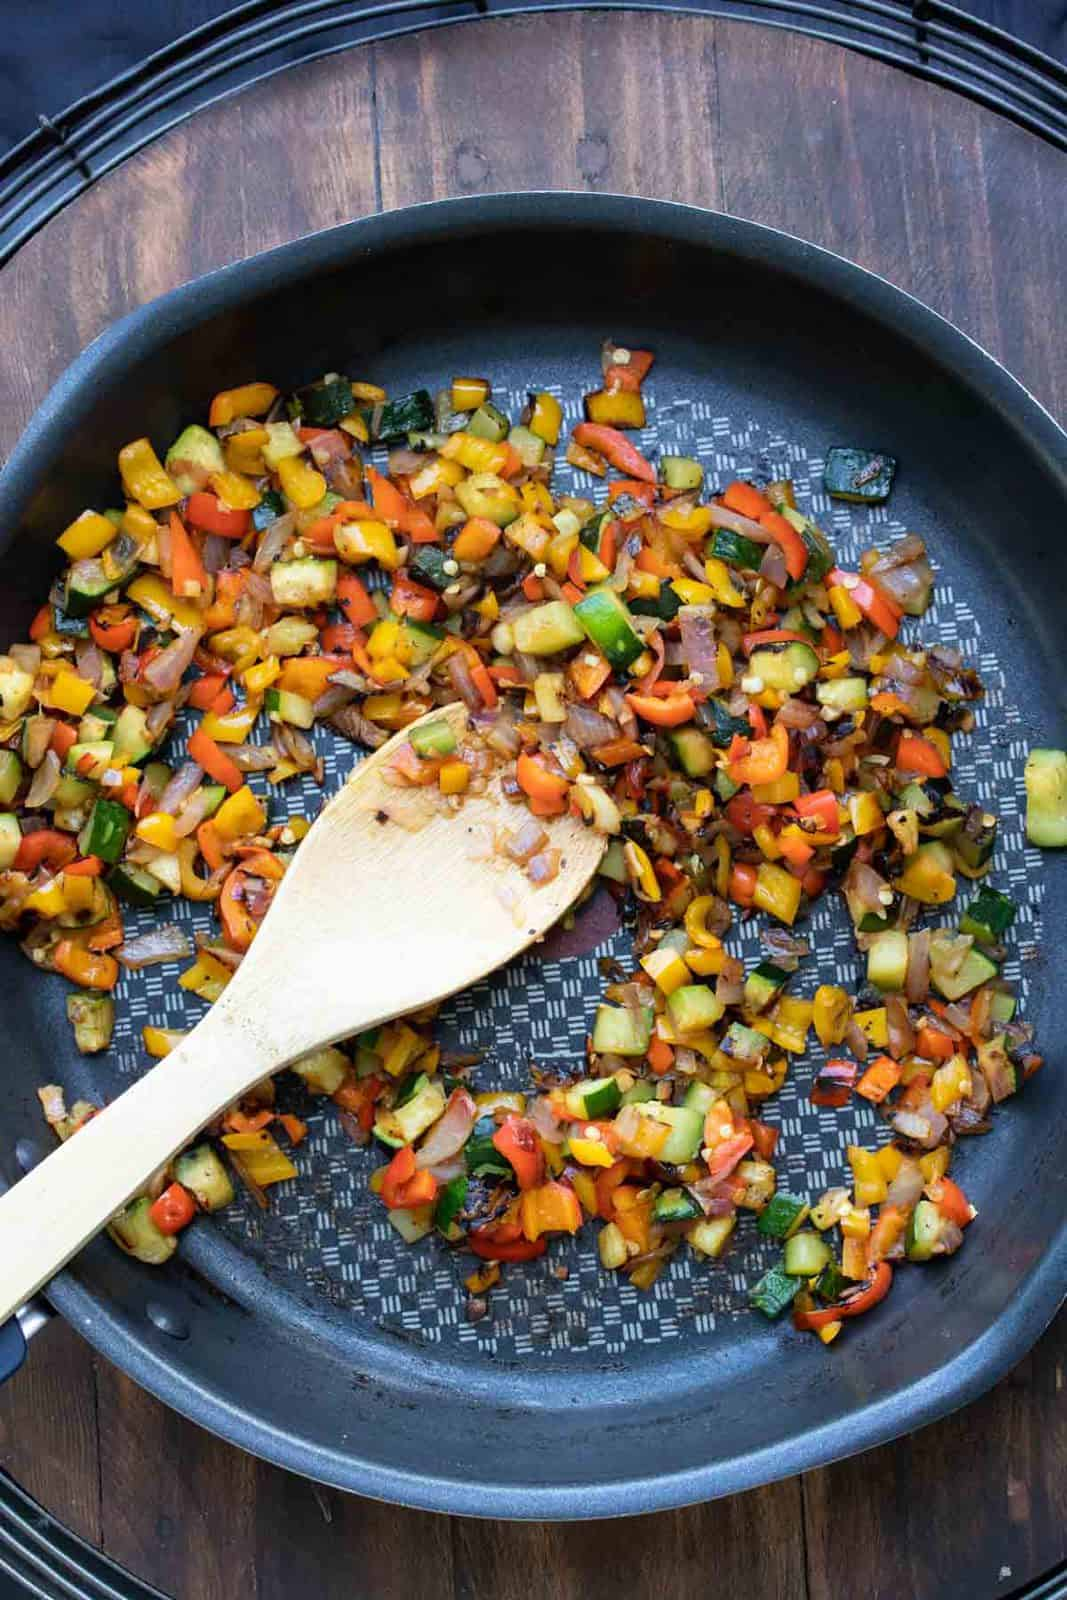 Wooden spoon mixing chopped veggies in a pan